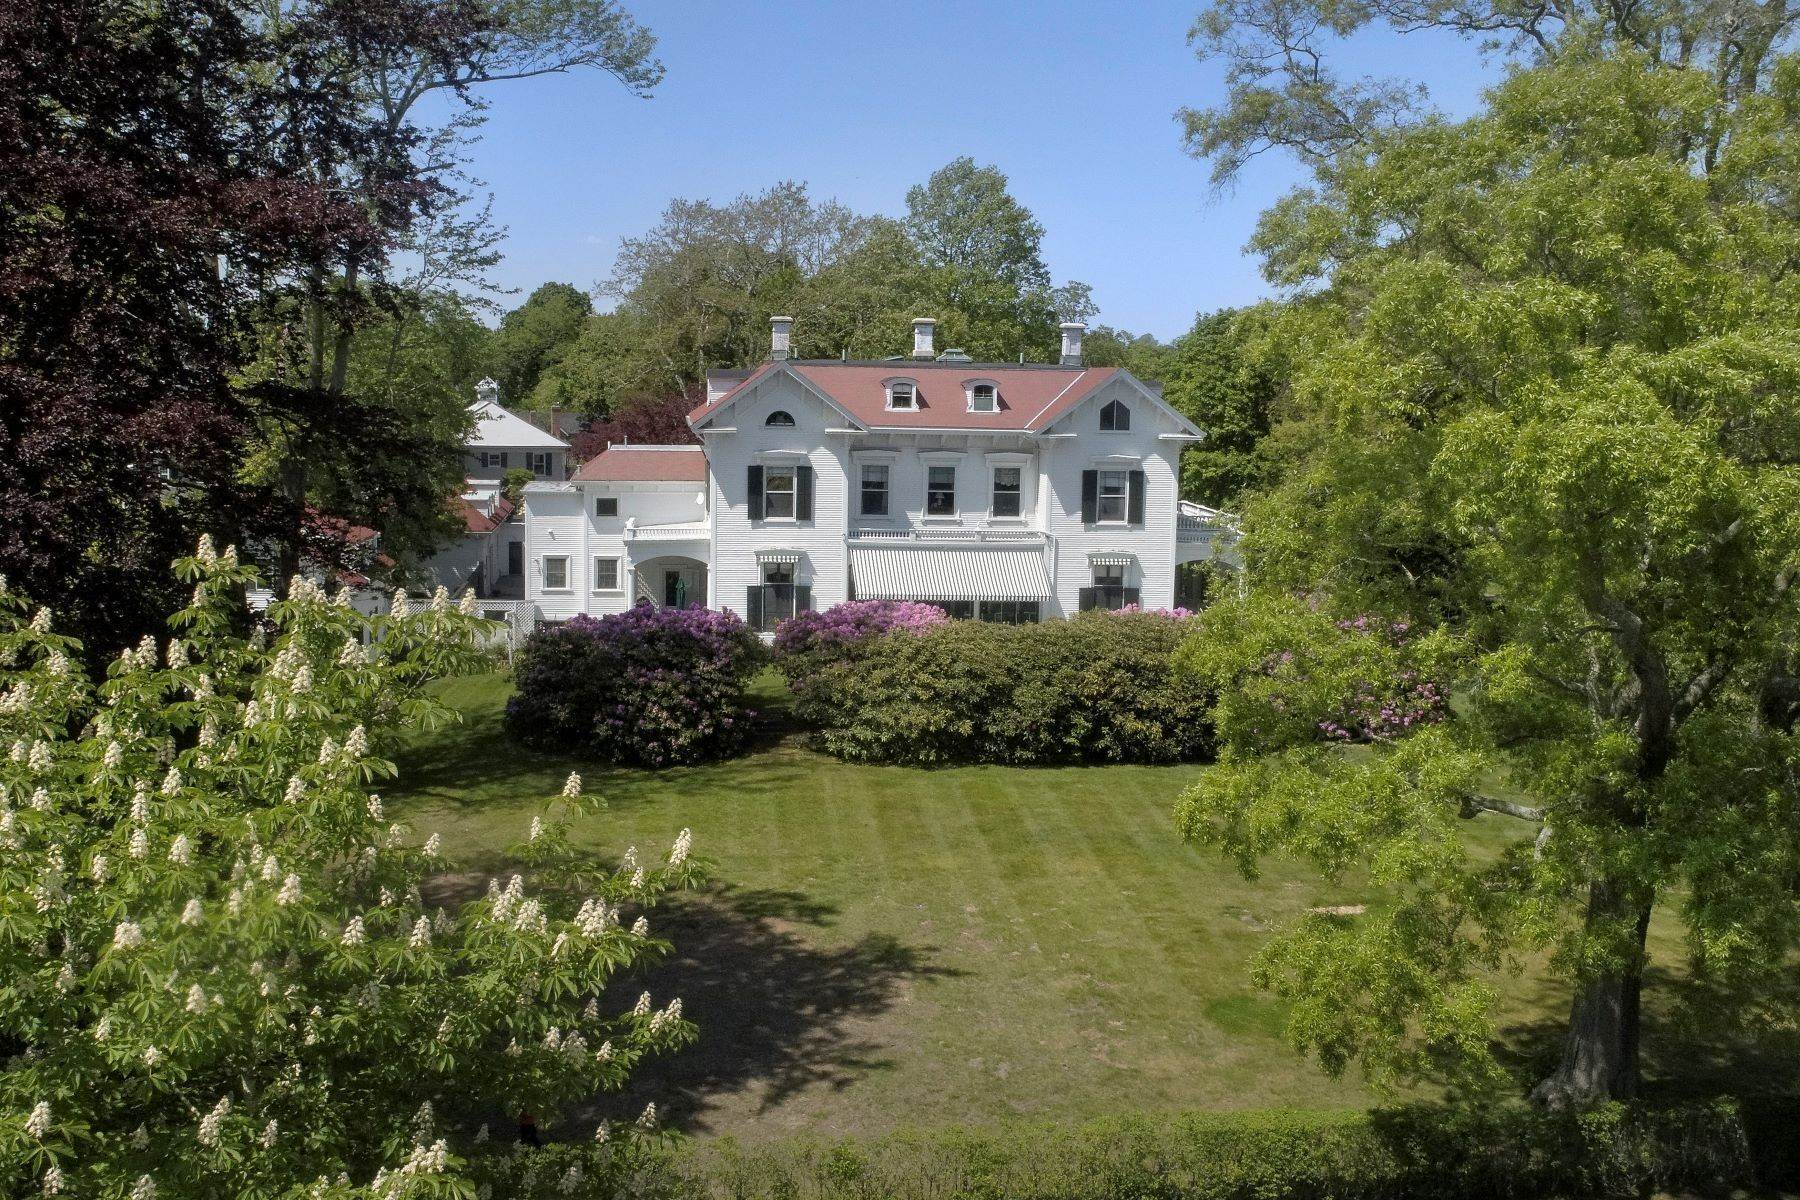 2. Single Family Homes for Sale at Gravel Court 21 Clay Street Newport, Rhode Island 02840 United States